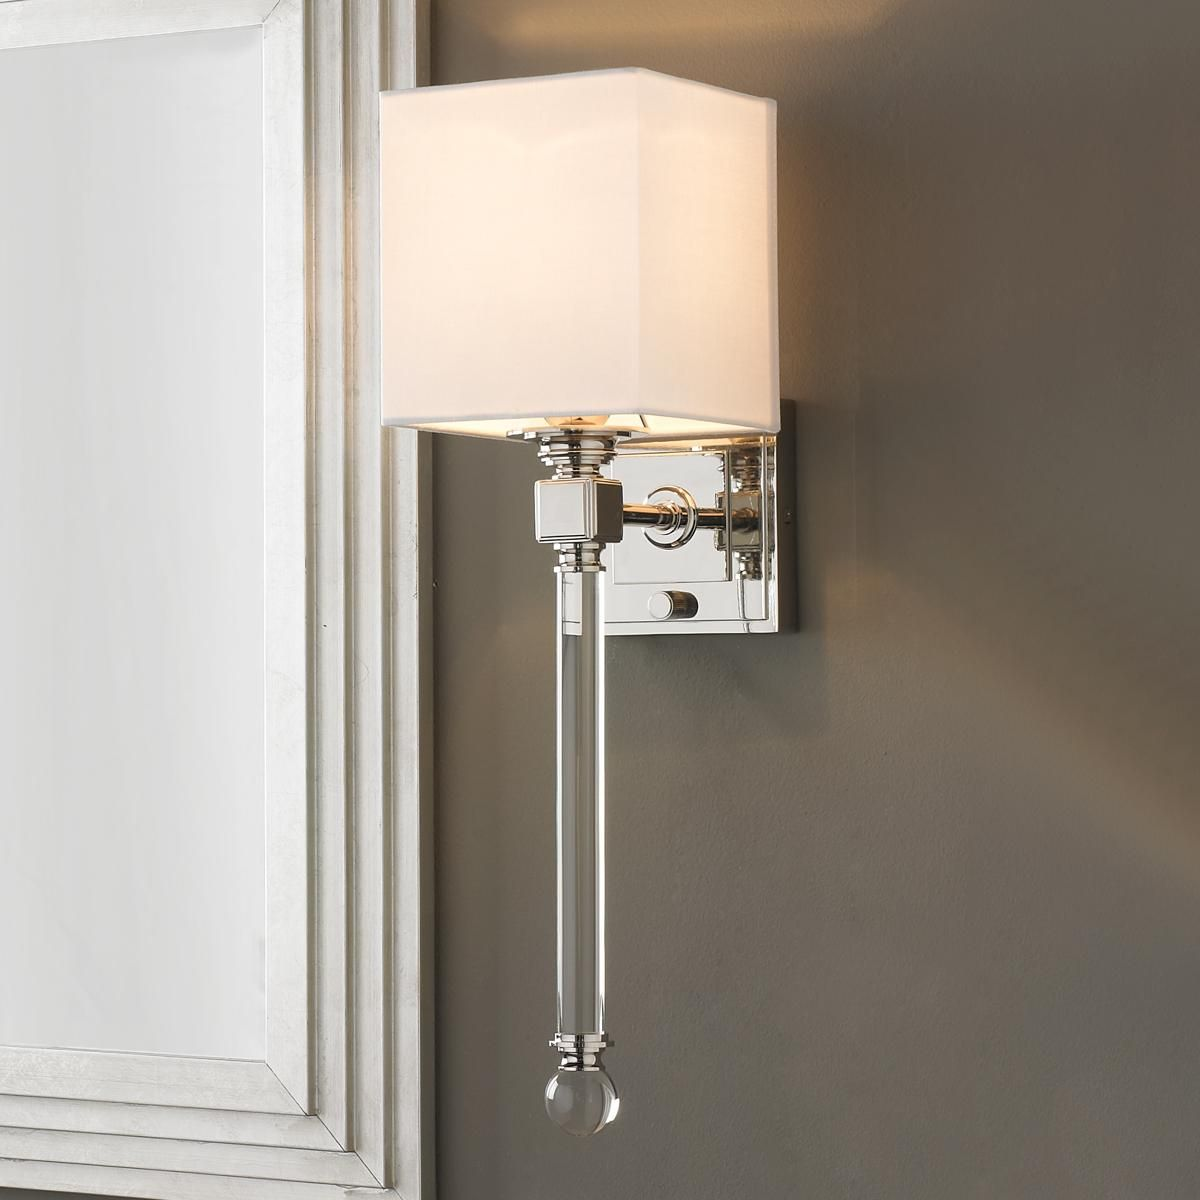 Chic Sophisticate Crystal Torch Wall Sconce  Torches Wall Best Wall Sconces Bathroom Decorating Inspiration